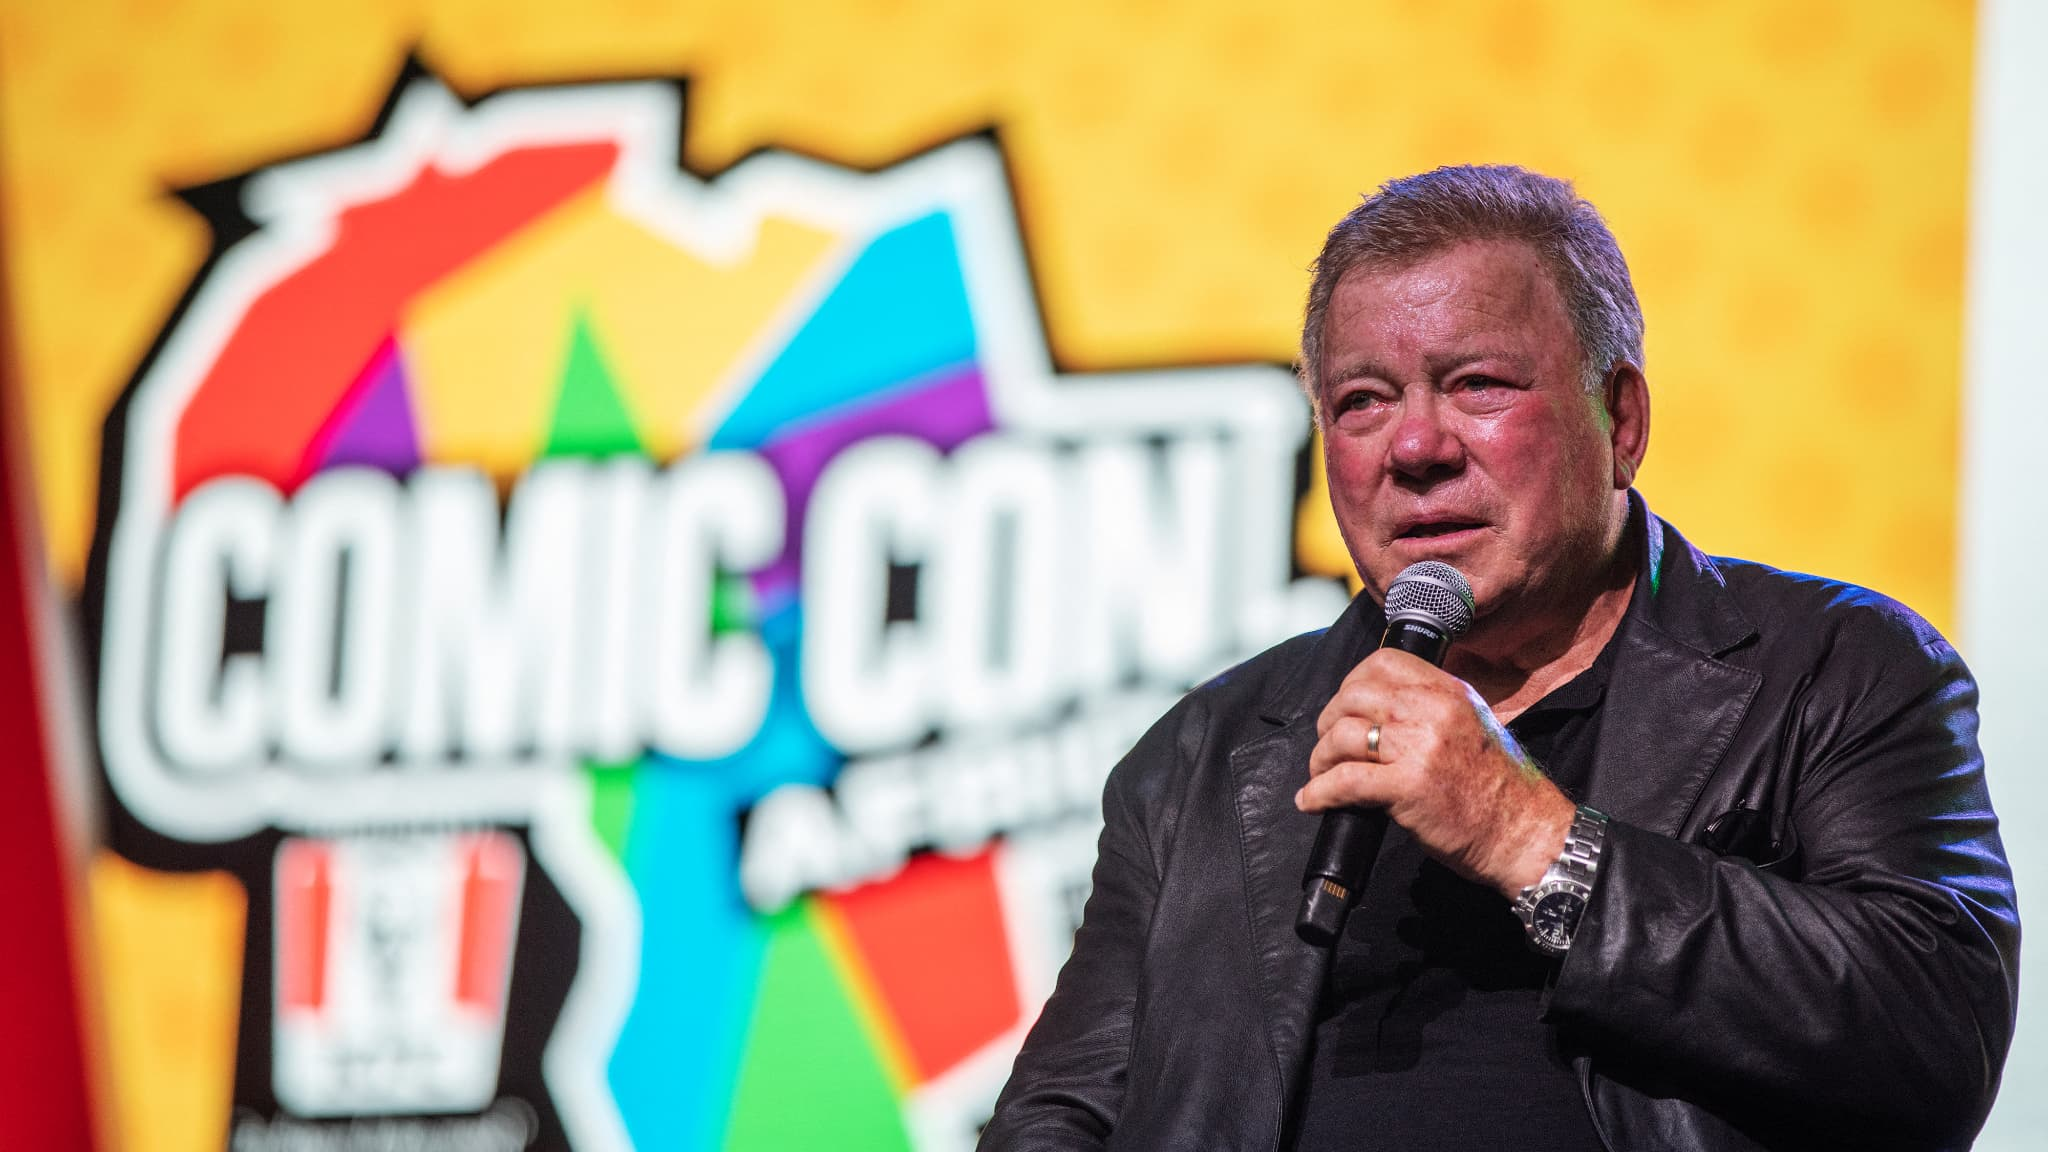 william shatner says he is terrified before going to